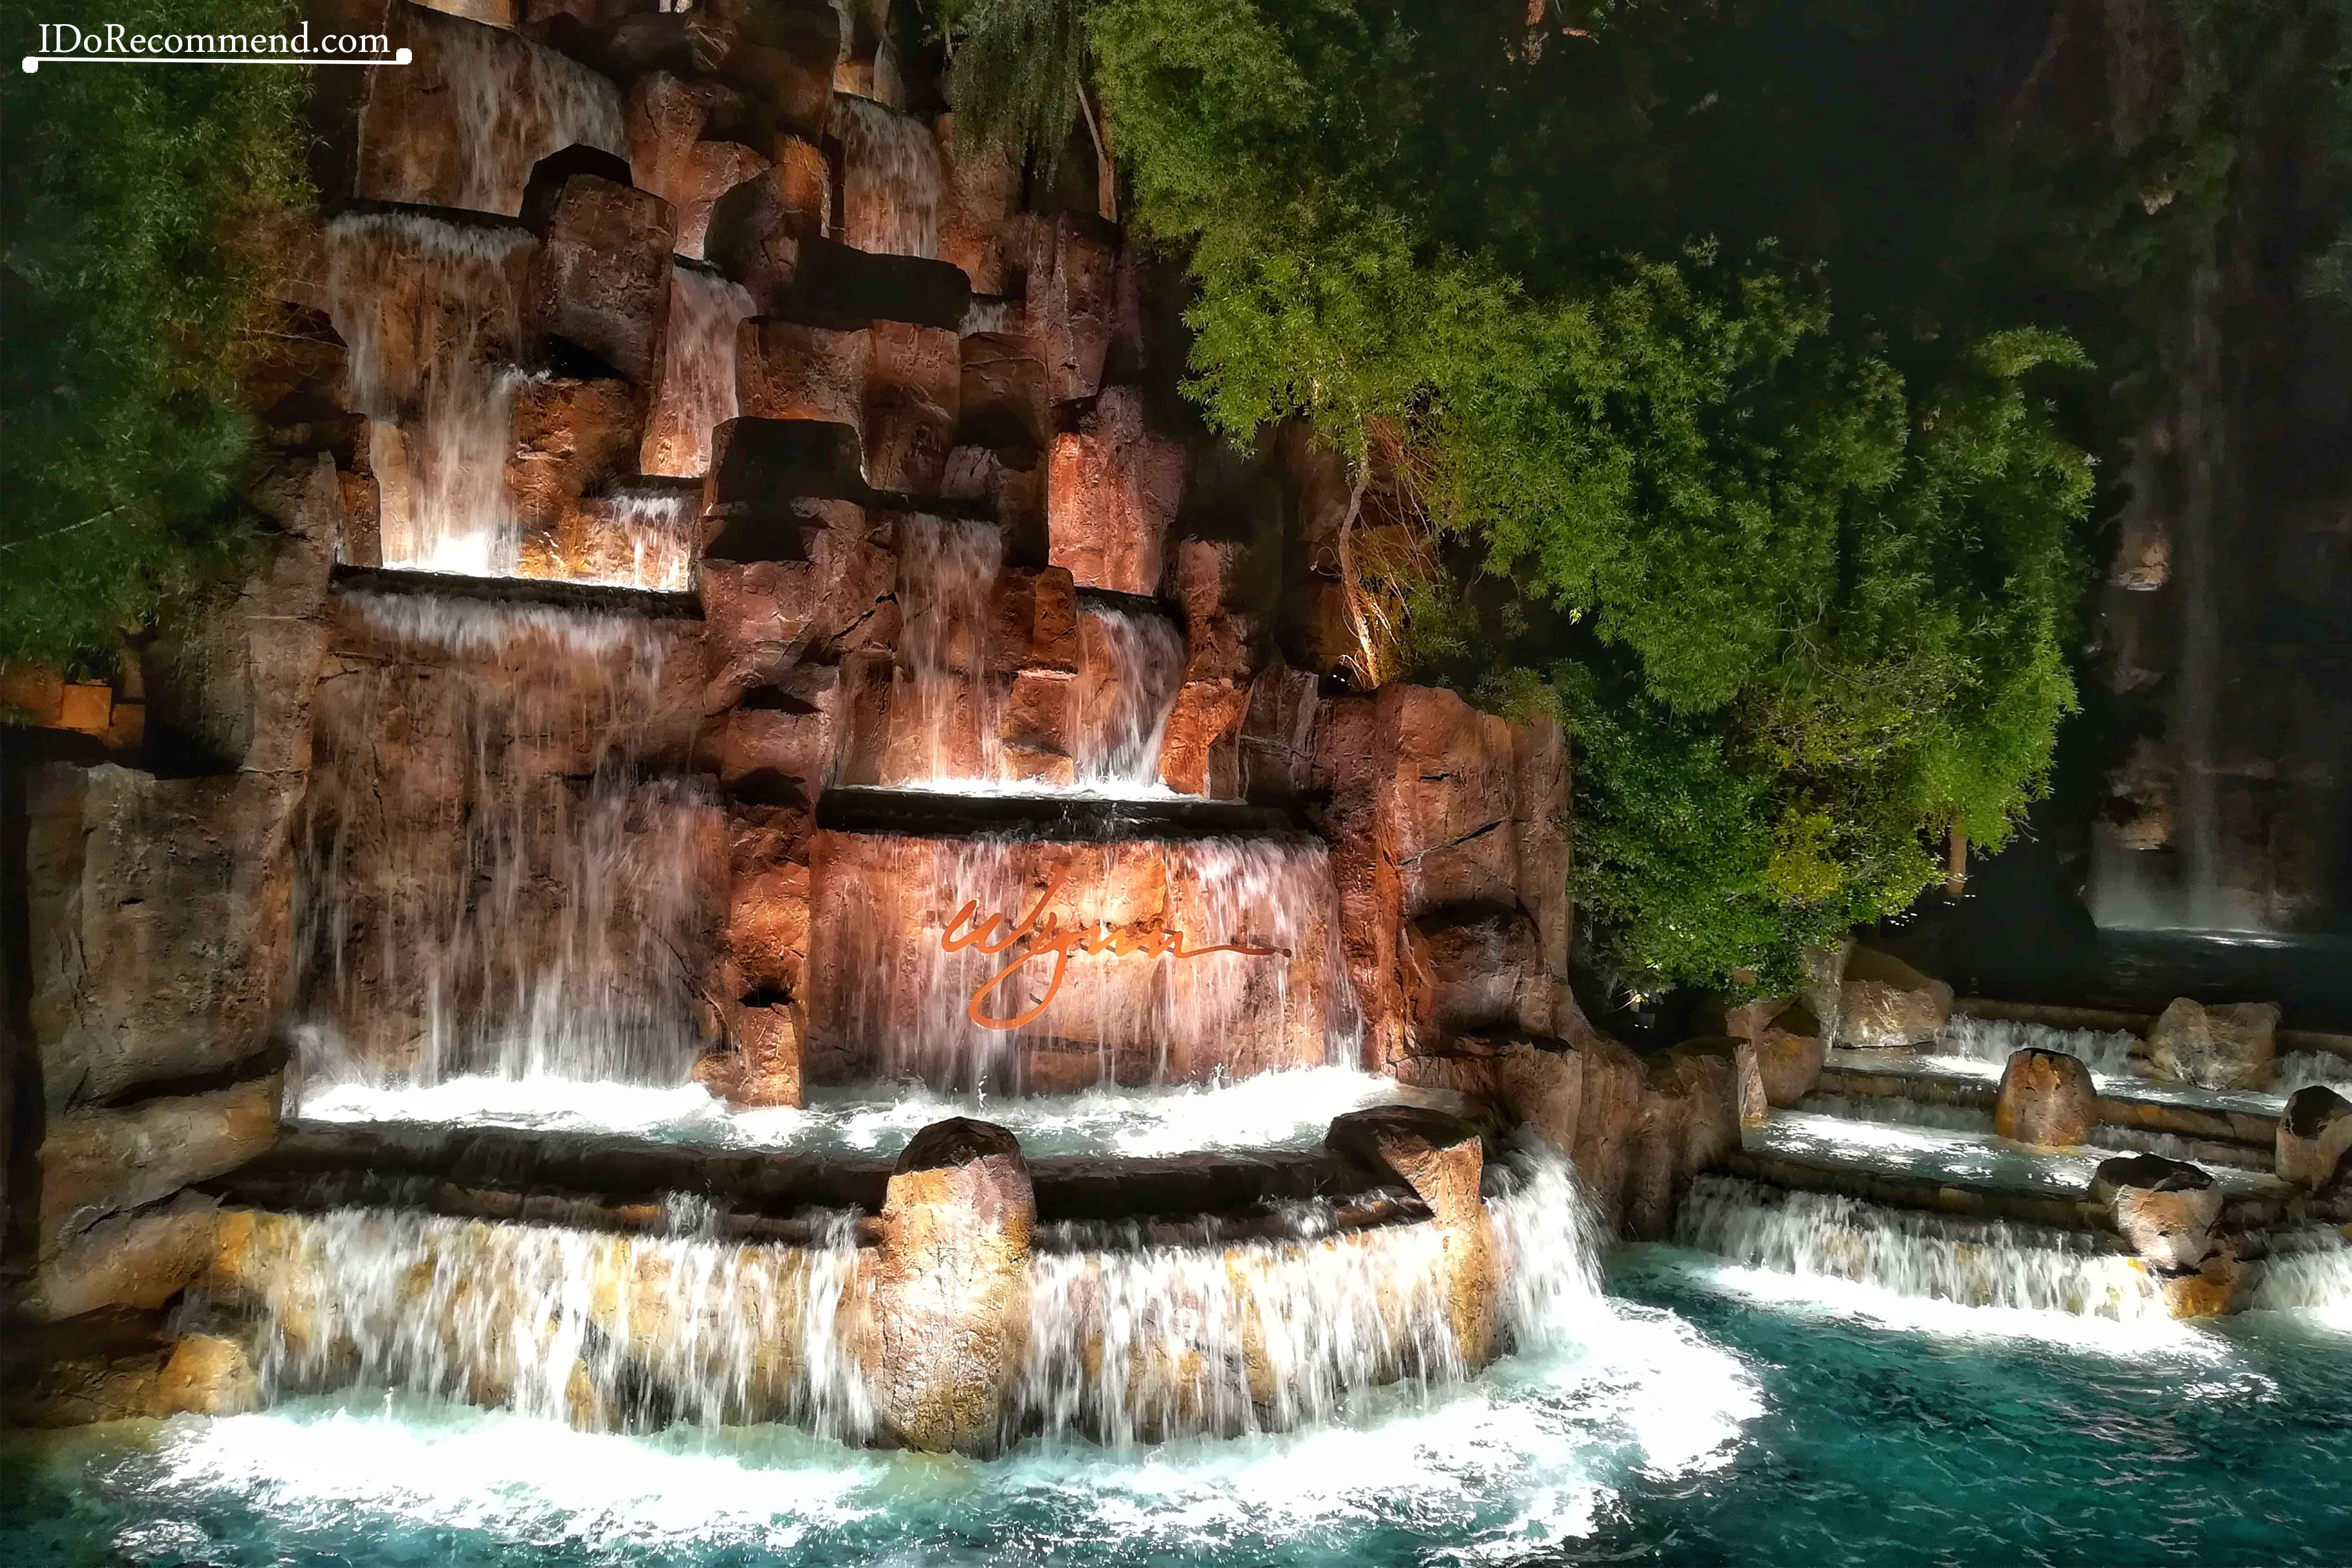 Las_Vegas_Strip_Wynn_Hotel_Casino